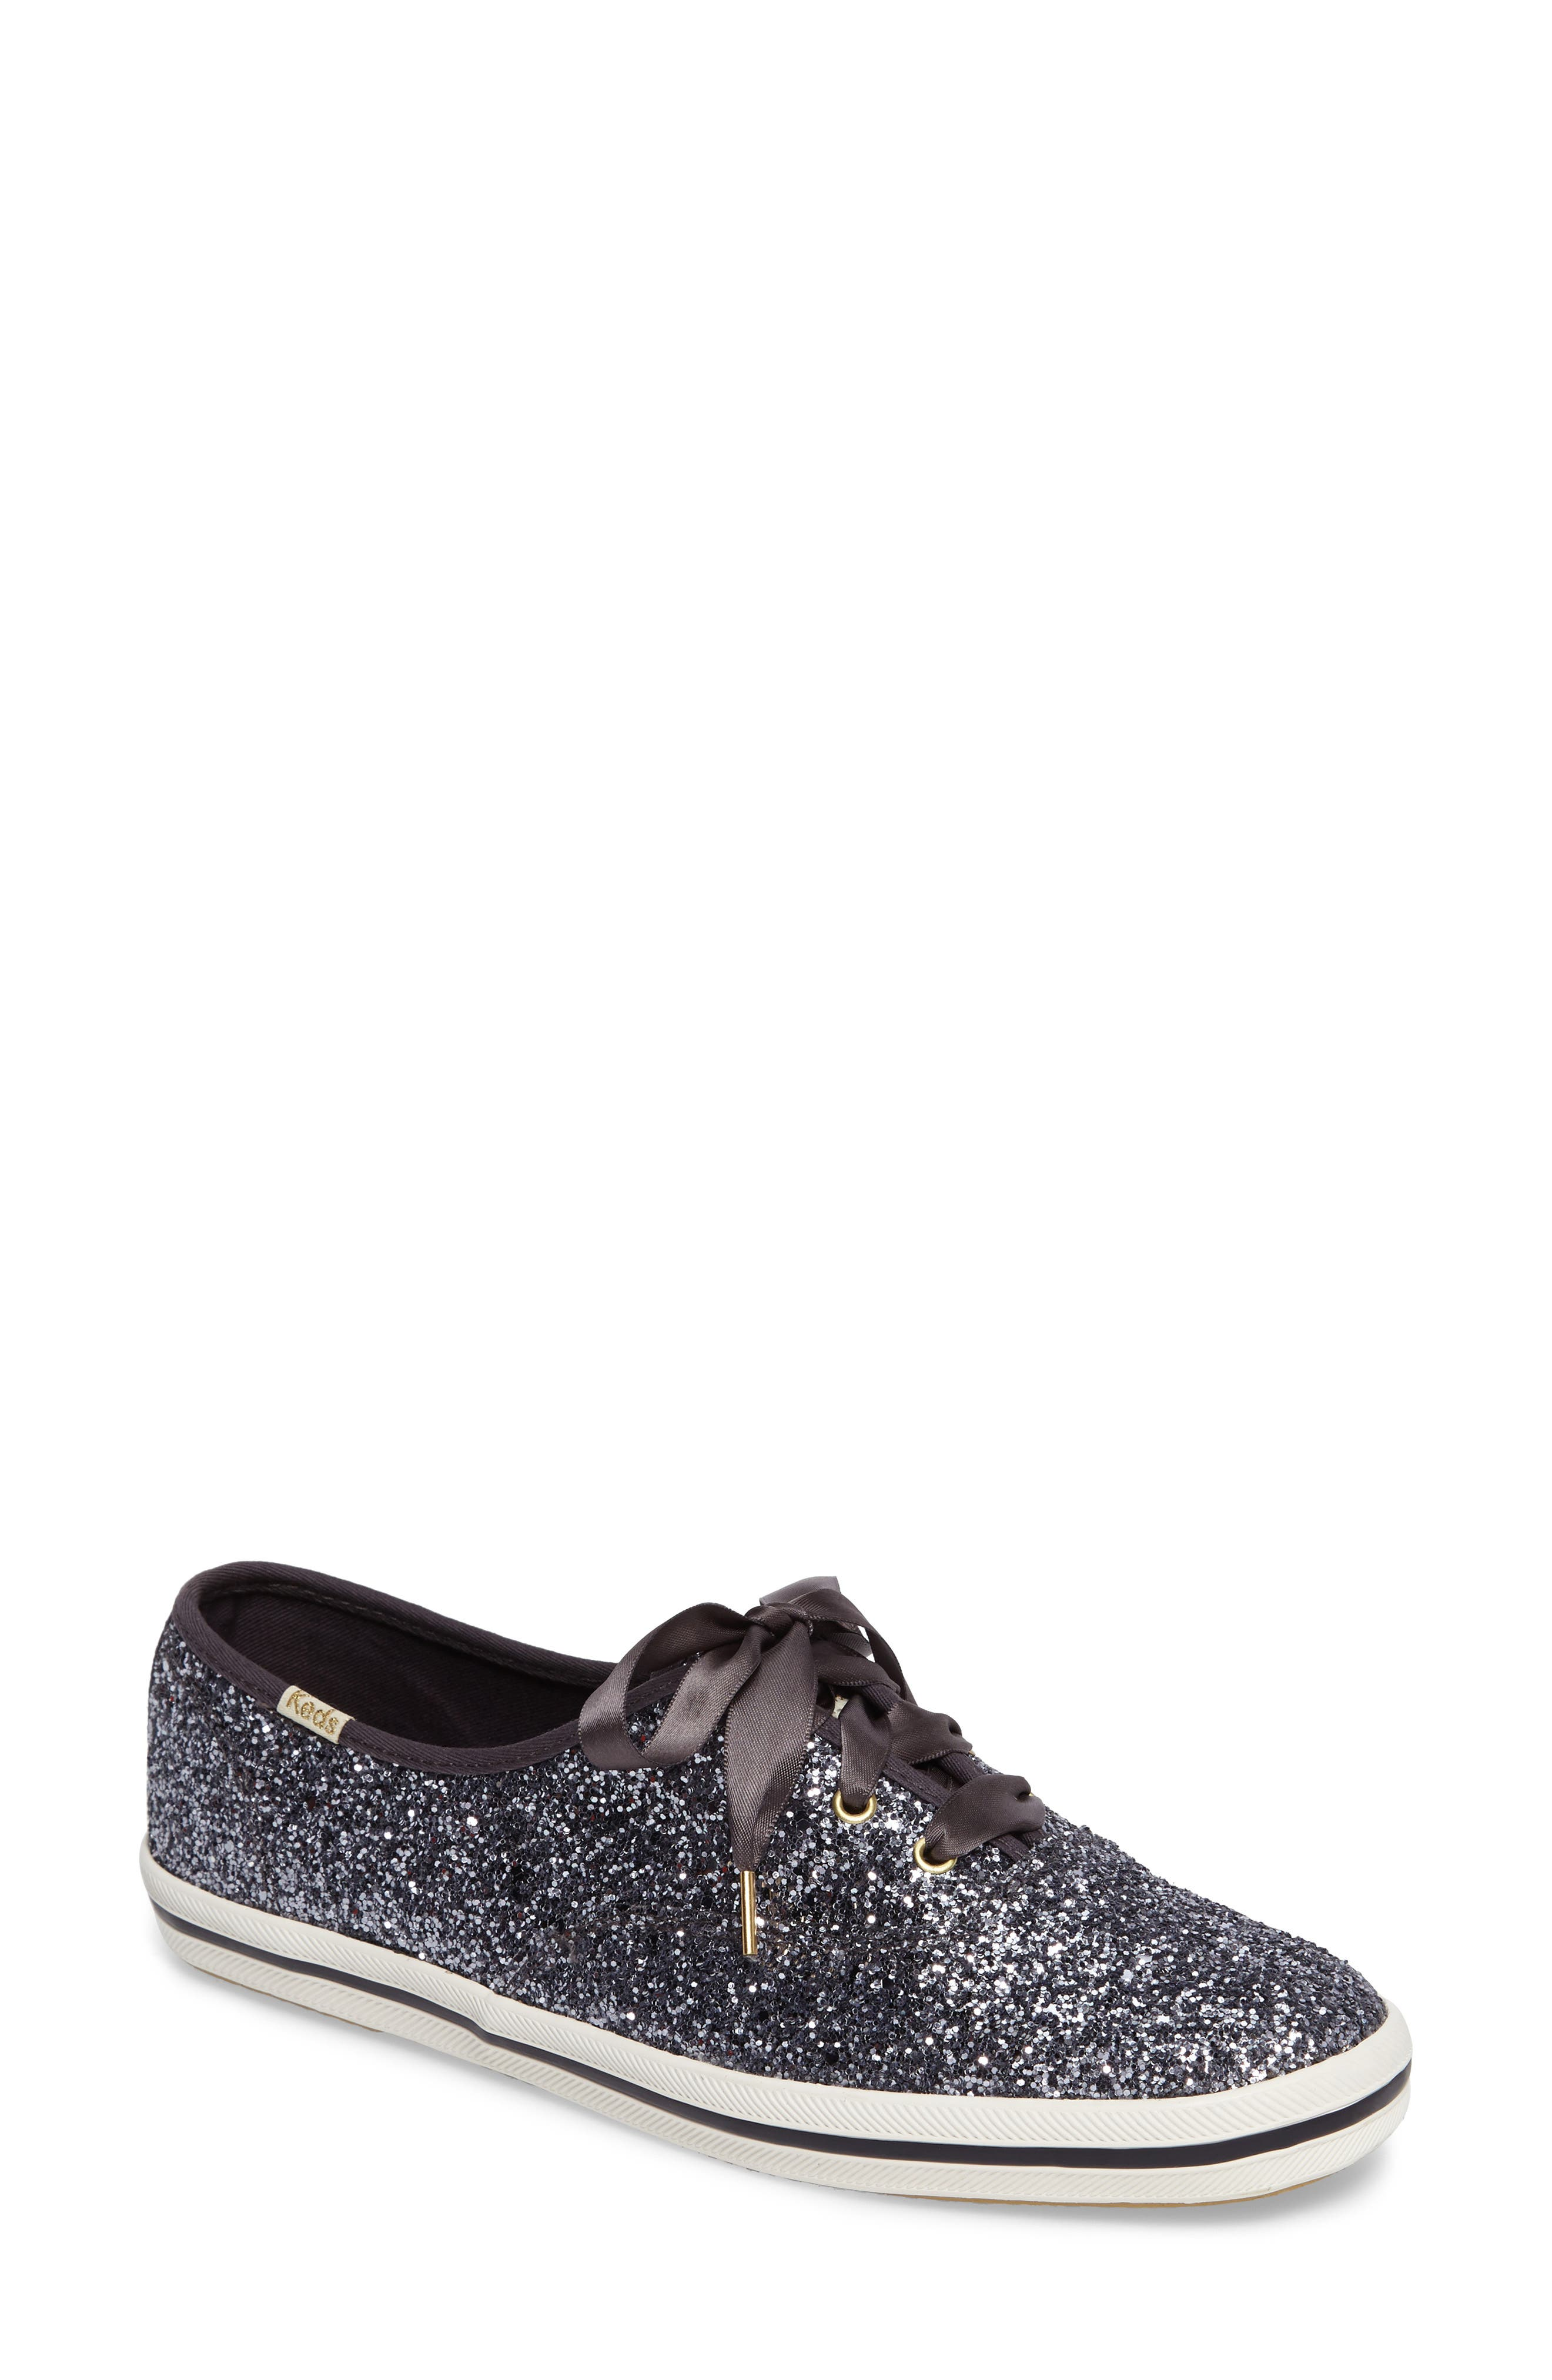 KEDS<SUP>®</SUP> FOR KATE SPADE NEW YORK glitter sneaker, Main, color, PEWTER